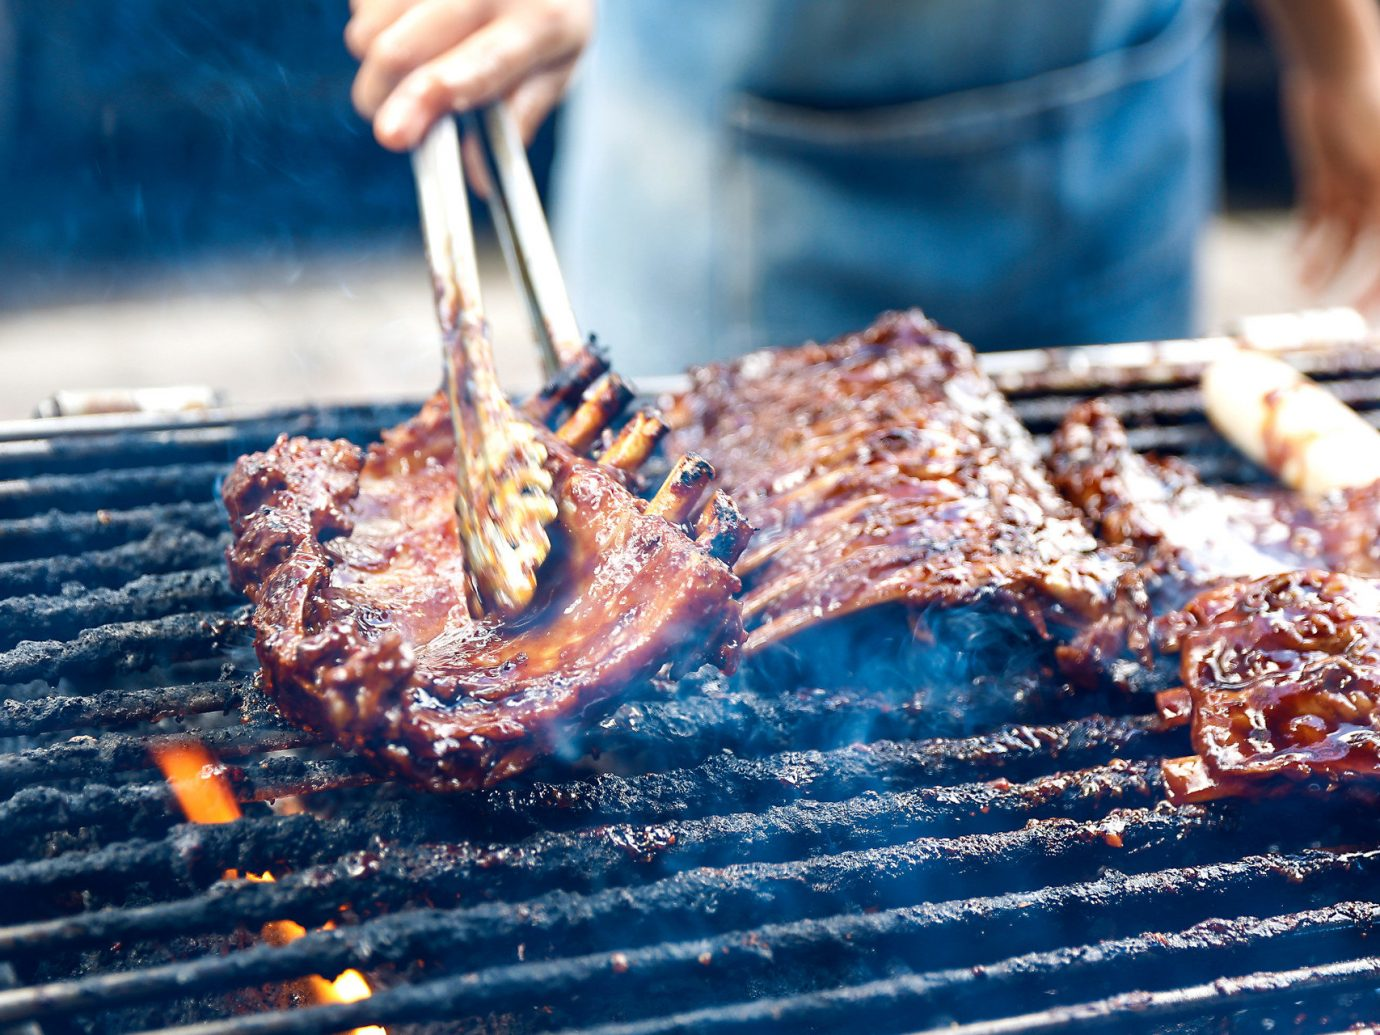 Budget Jetsetter Guides Weekend Getaways food person grilling dish meat piece barbecue slice cooking cuisine barbecue grill outdoor grill sushi baking animal source foods pan grill